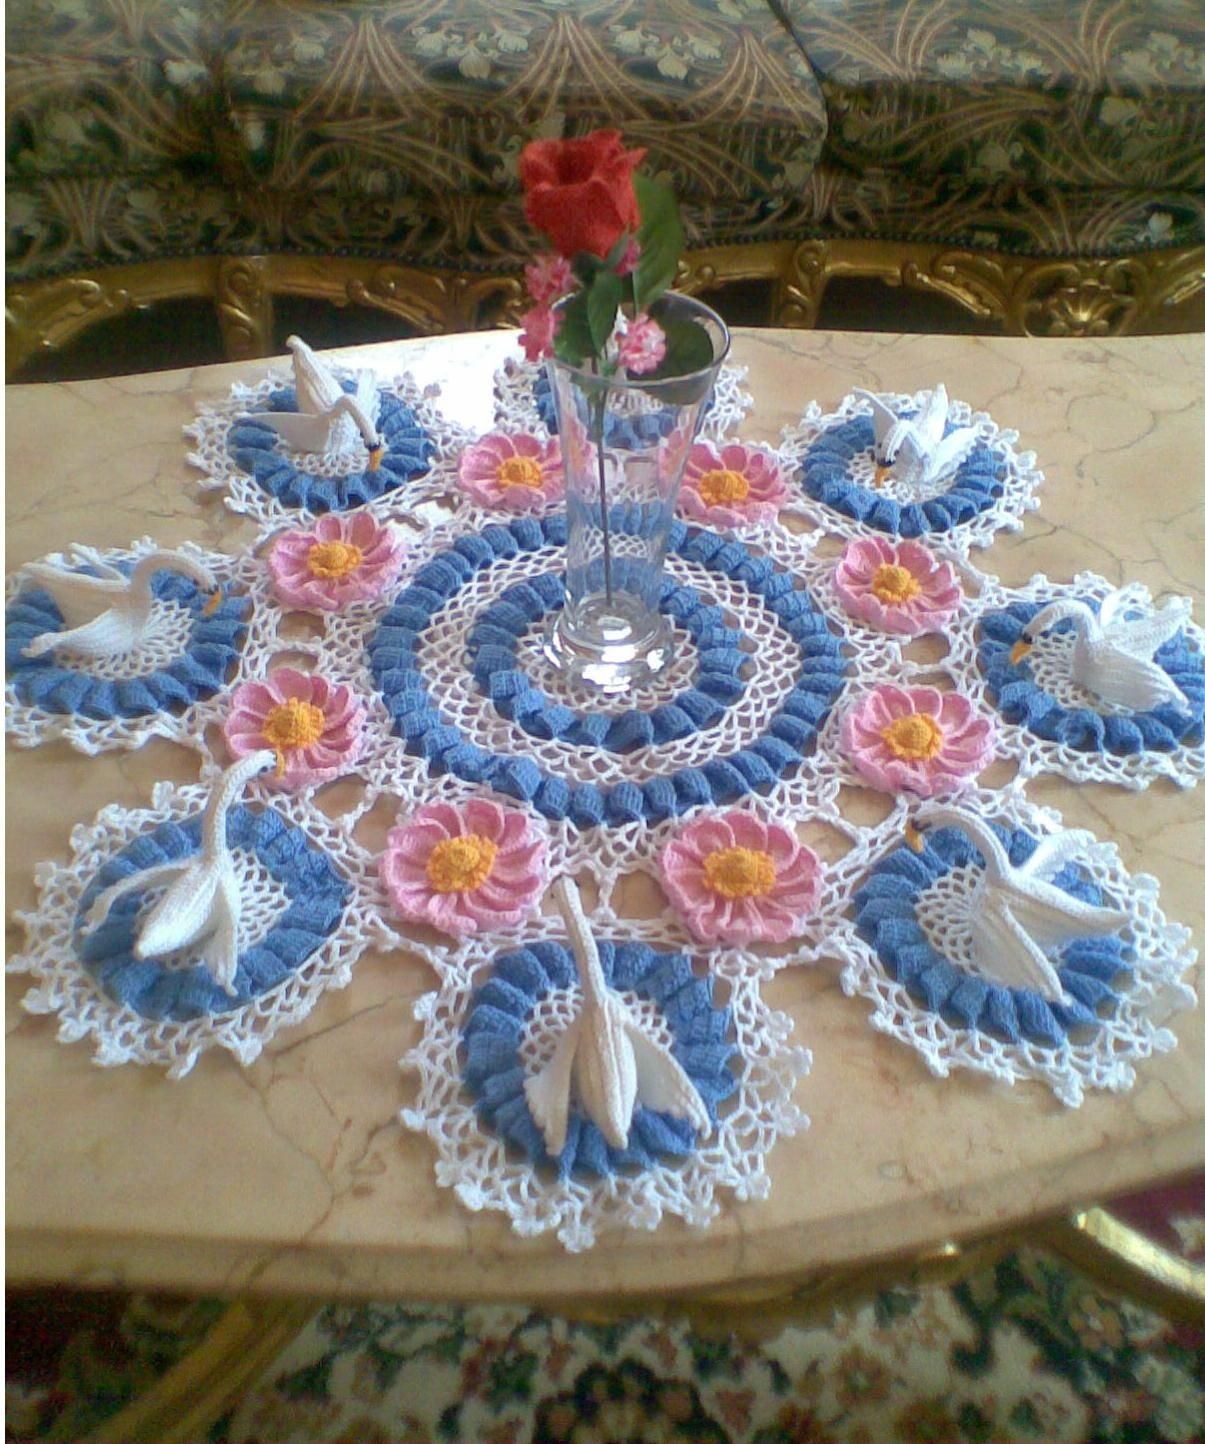 Msochet swan lake doily only pictur no pattens crochet msochet swan lake doily only pictur no pattens bankloansurffo Images